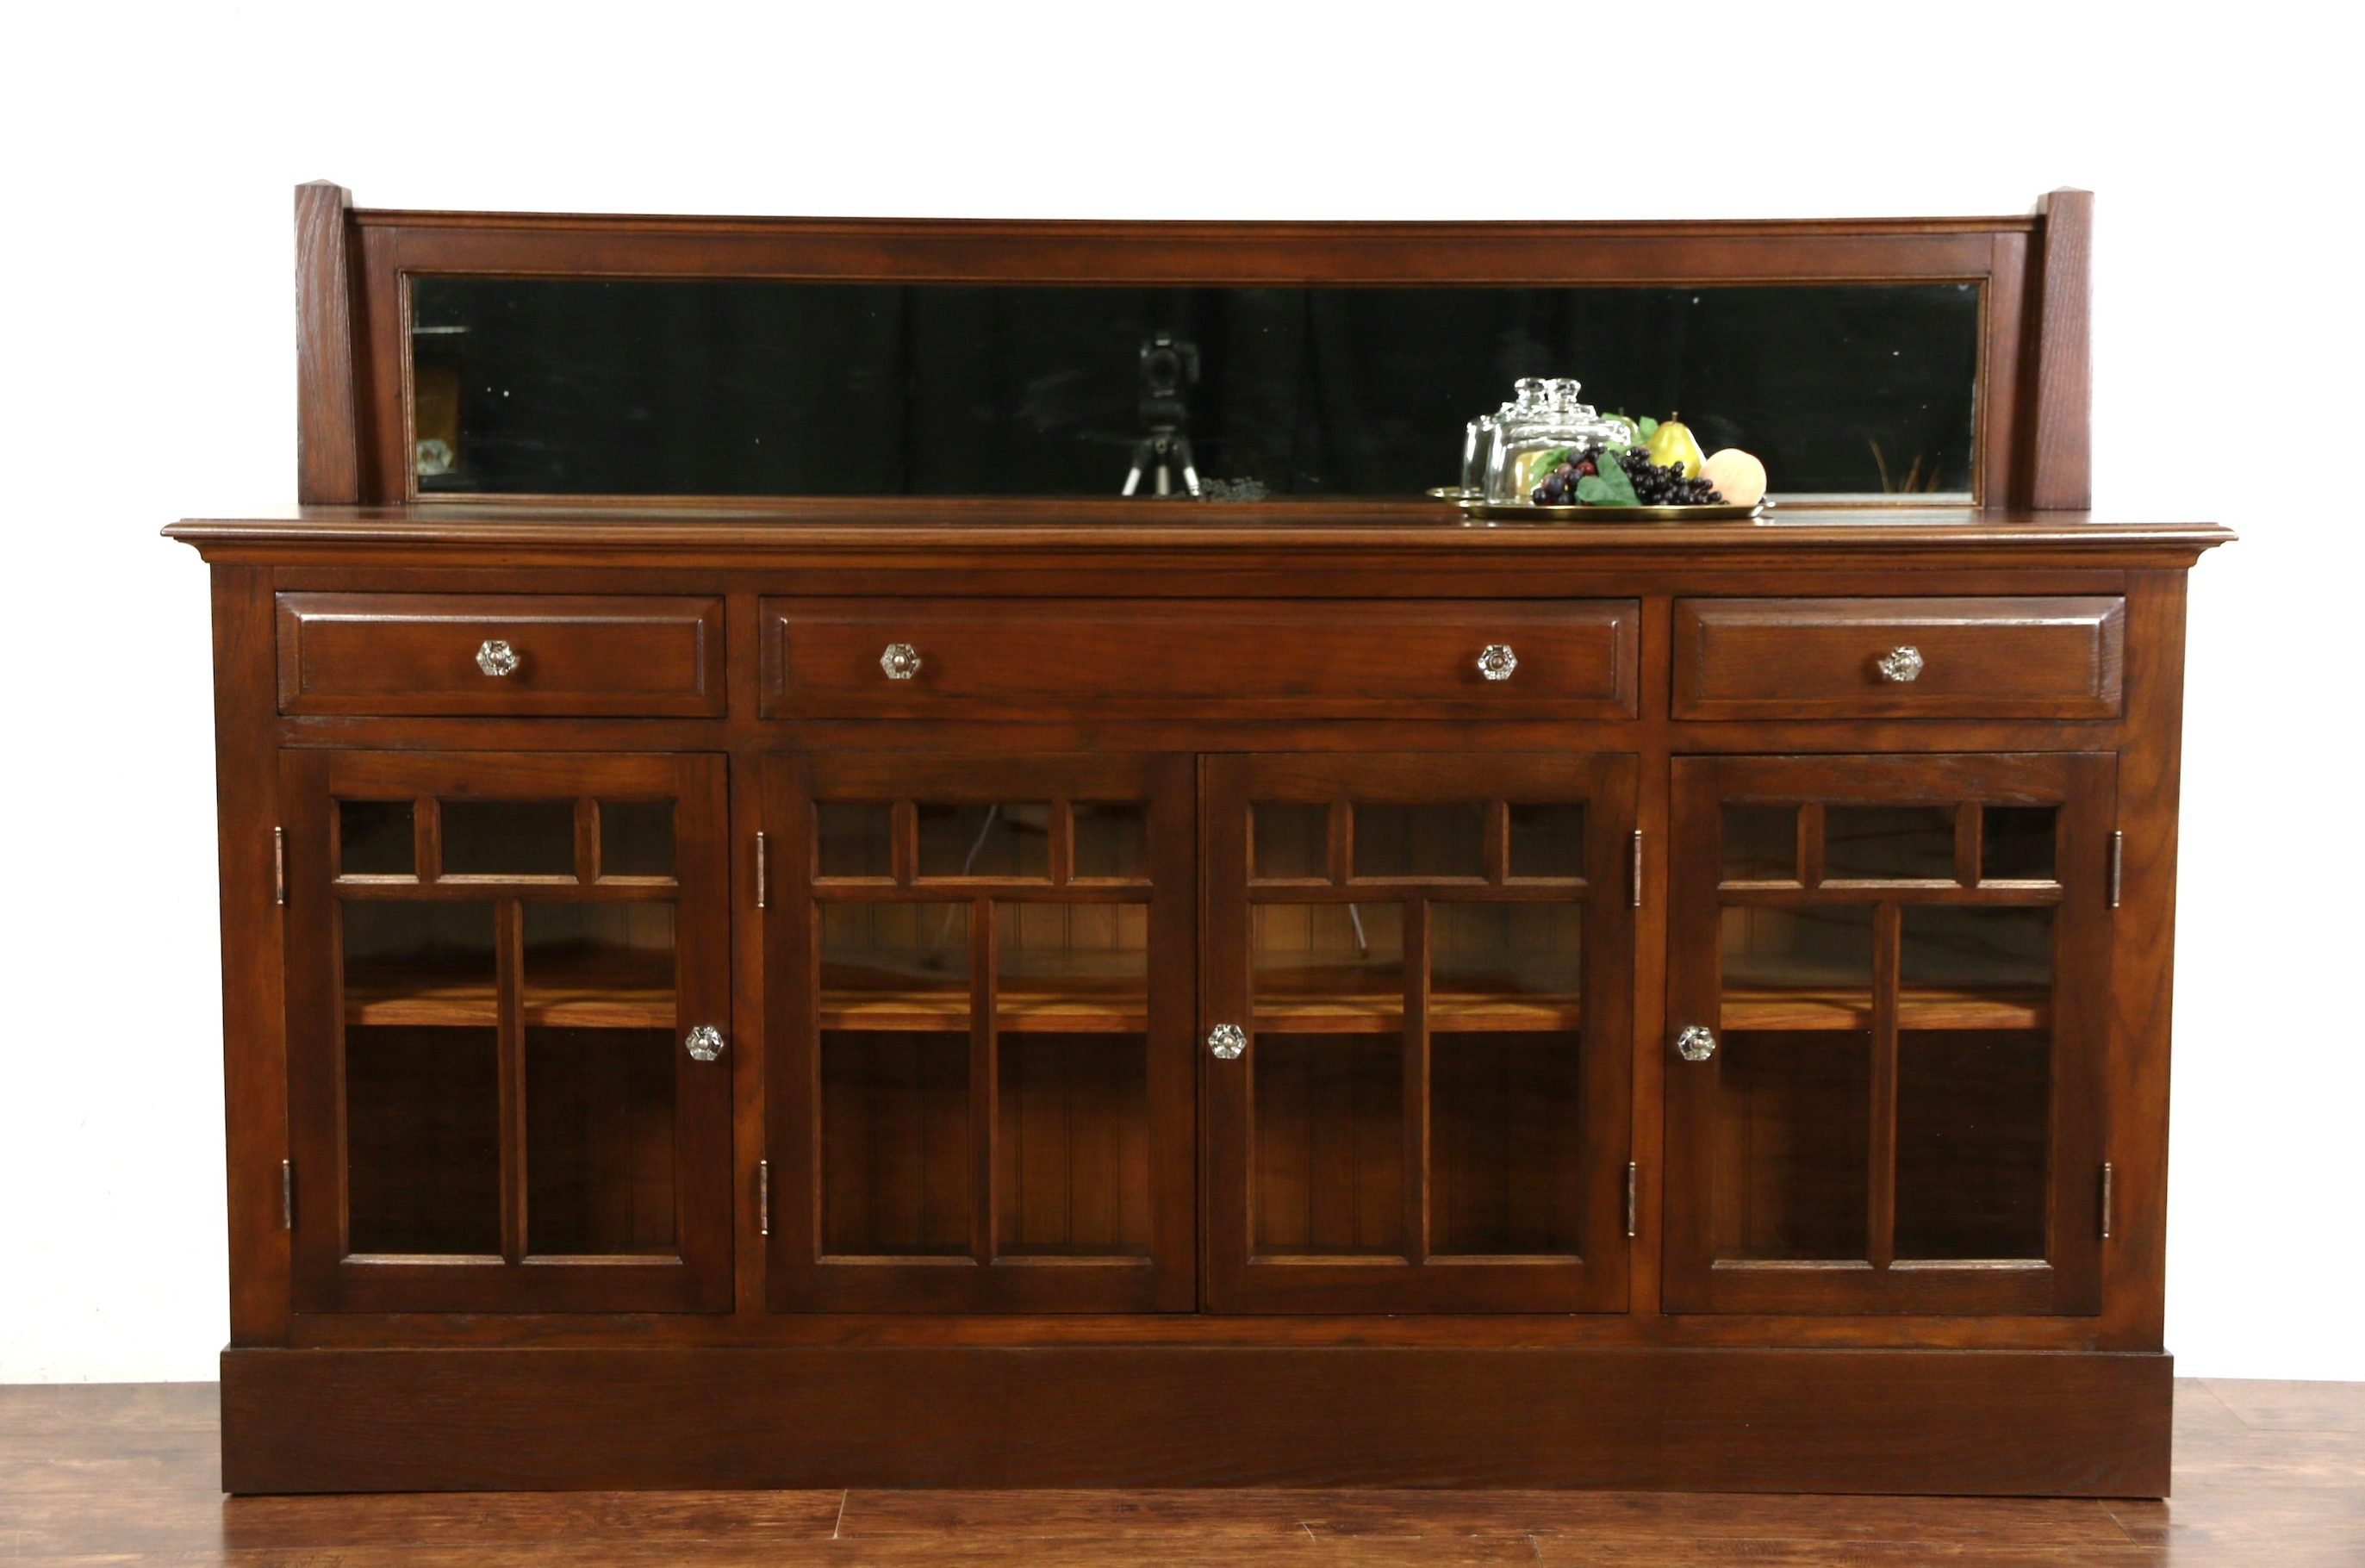 Antique arts and crafts furniture - Arts Crafts Mission Oak Antique 1910 Craftsman Server Or Sideboard